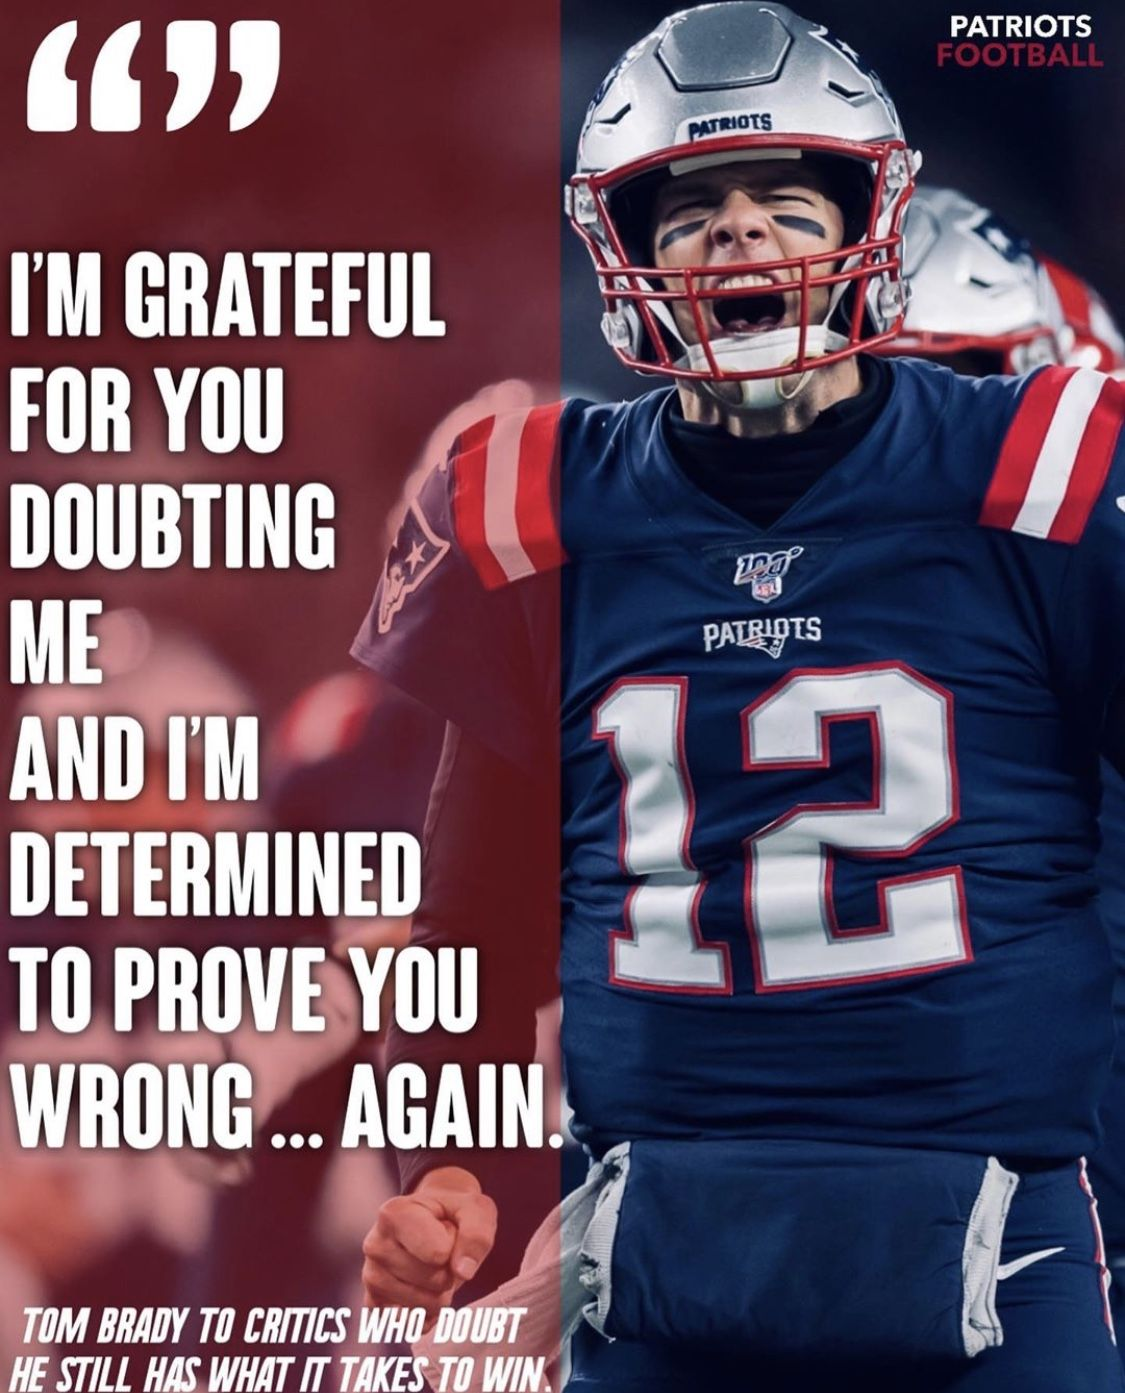 Pin By Phillip Boutros On Ne Patriots In 2020 New England Patriots Football New England Patriots Players New England Patriots